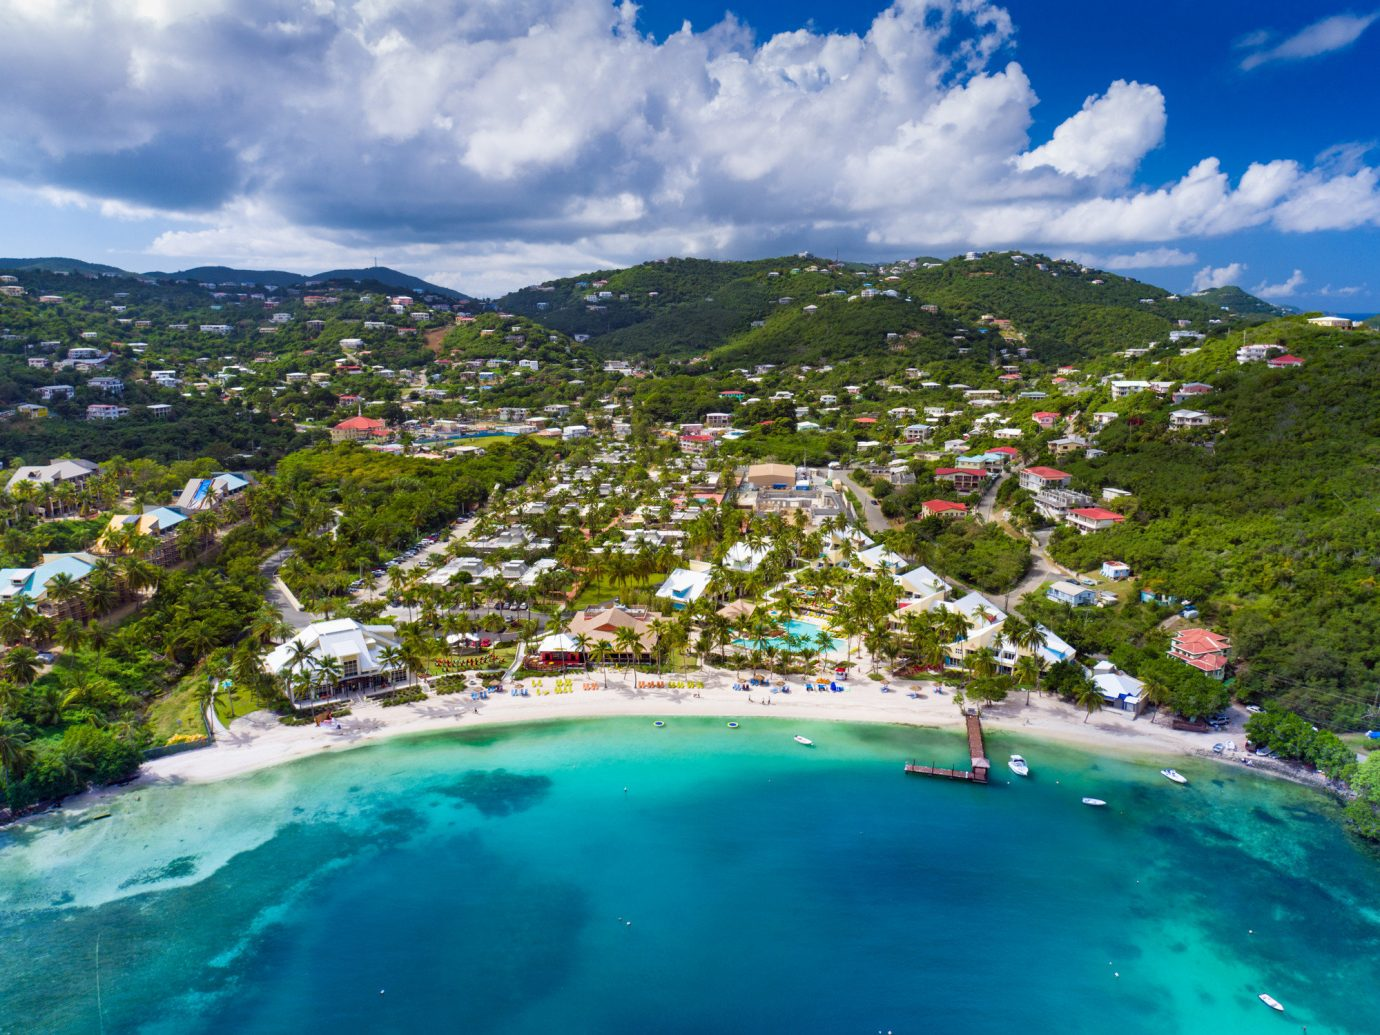 Hotels Romance Travel Tips Trip Ideas sky outdoor water Nature landform geographical feature mountain Sea reef Coast Ocean vacation caribbean bay landscape Lagoon blue tropics Island cape mountain range swimming day